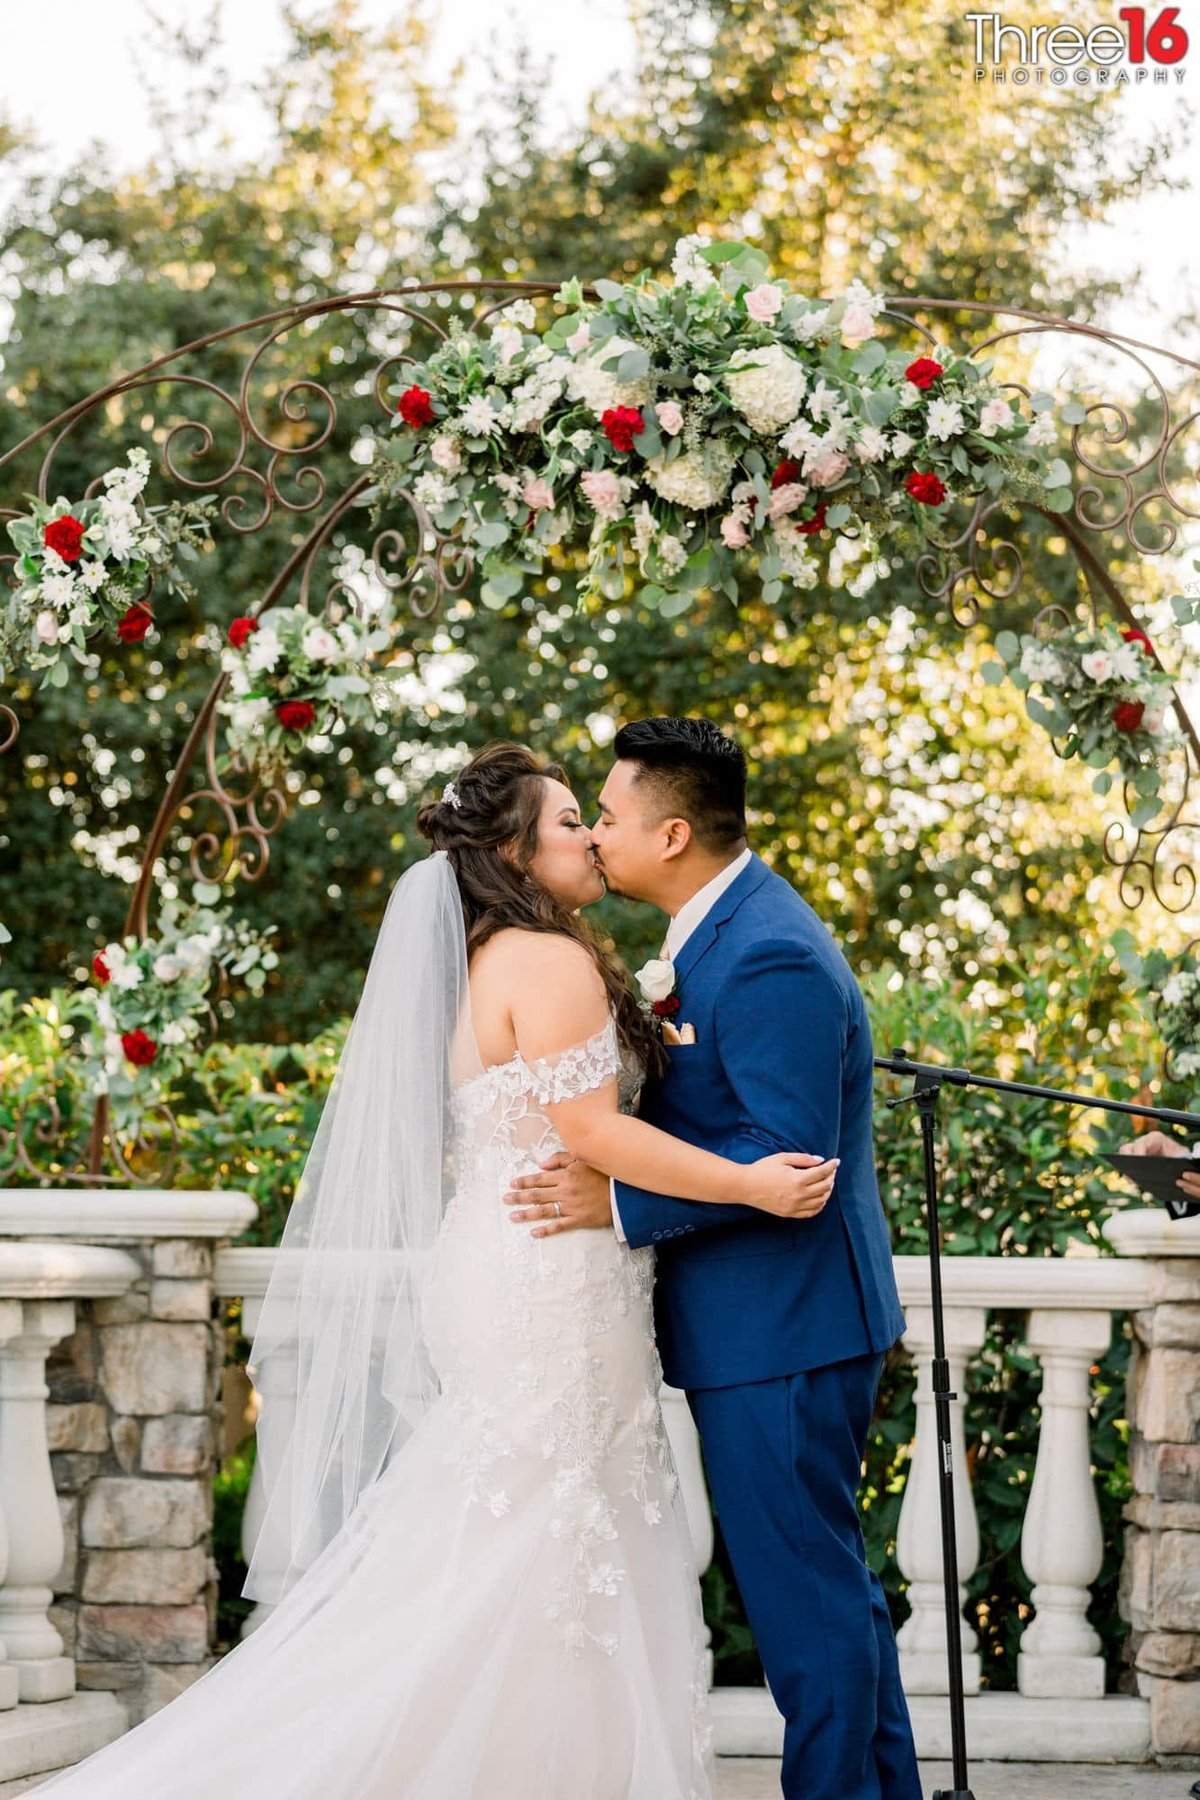 Groom kisses his Bride to seal the marriage